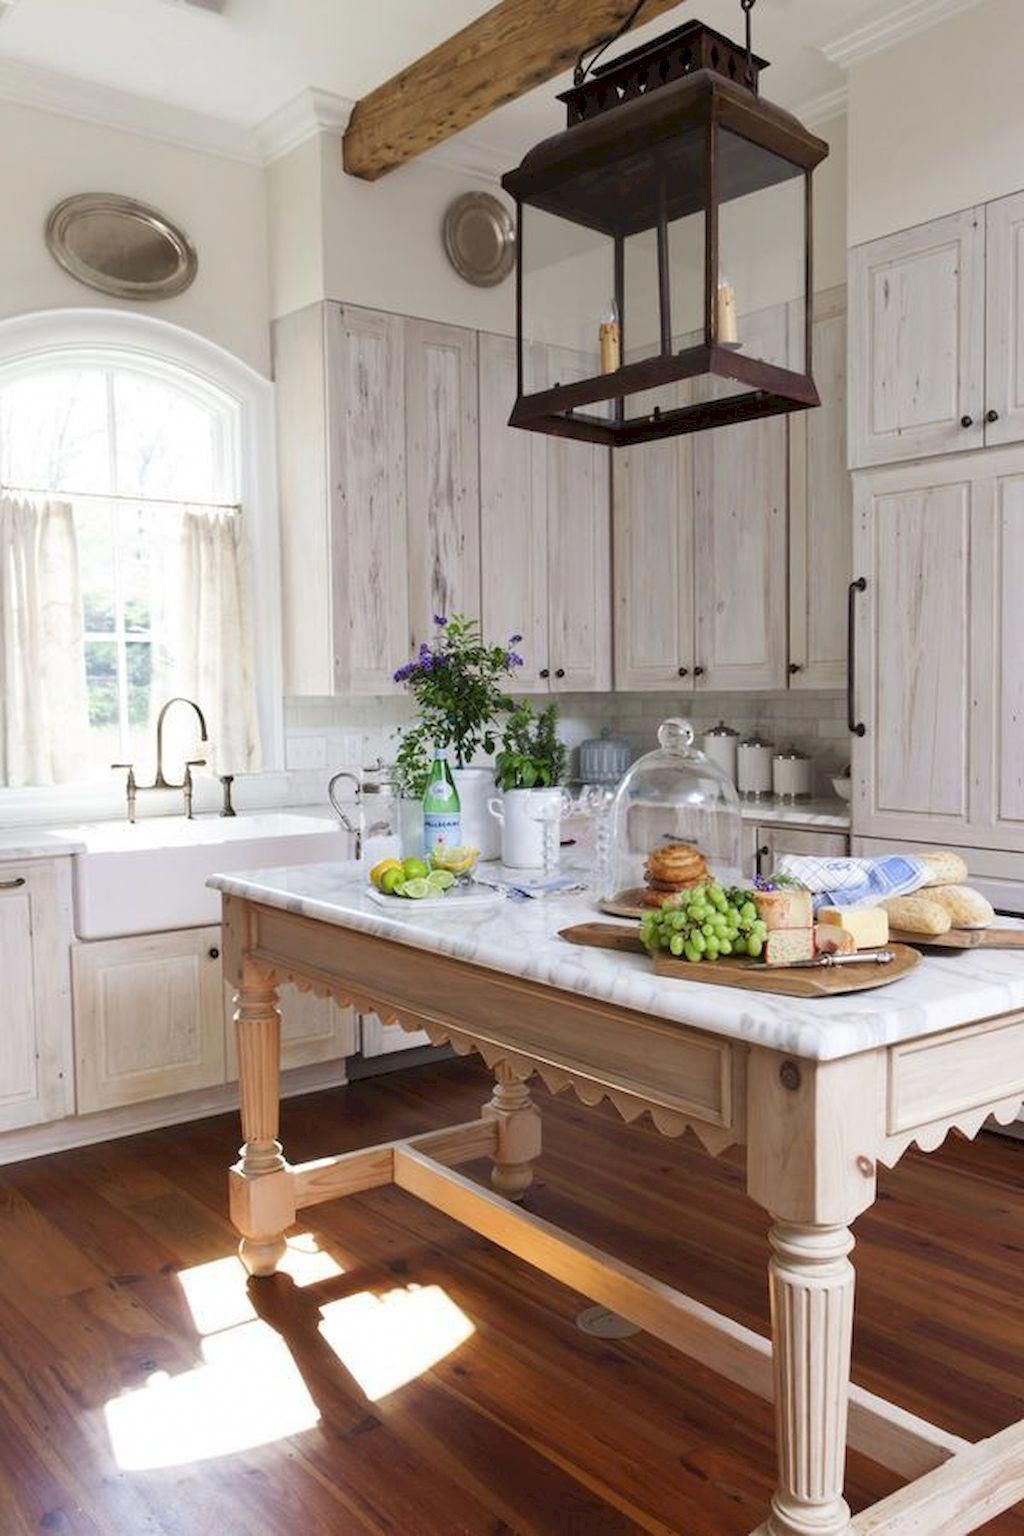 Pin by Mary Ringwood on Keuken Country kitchen designs